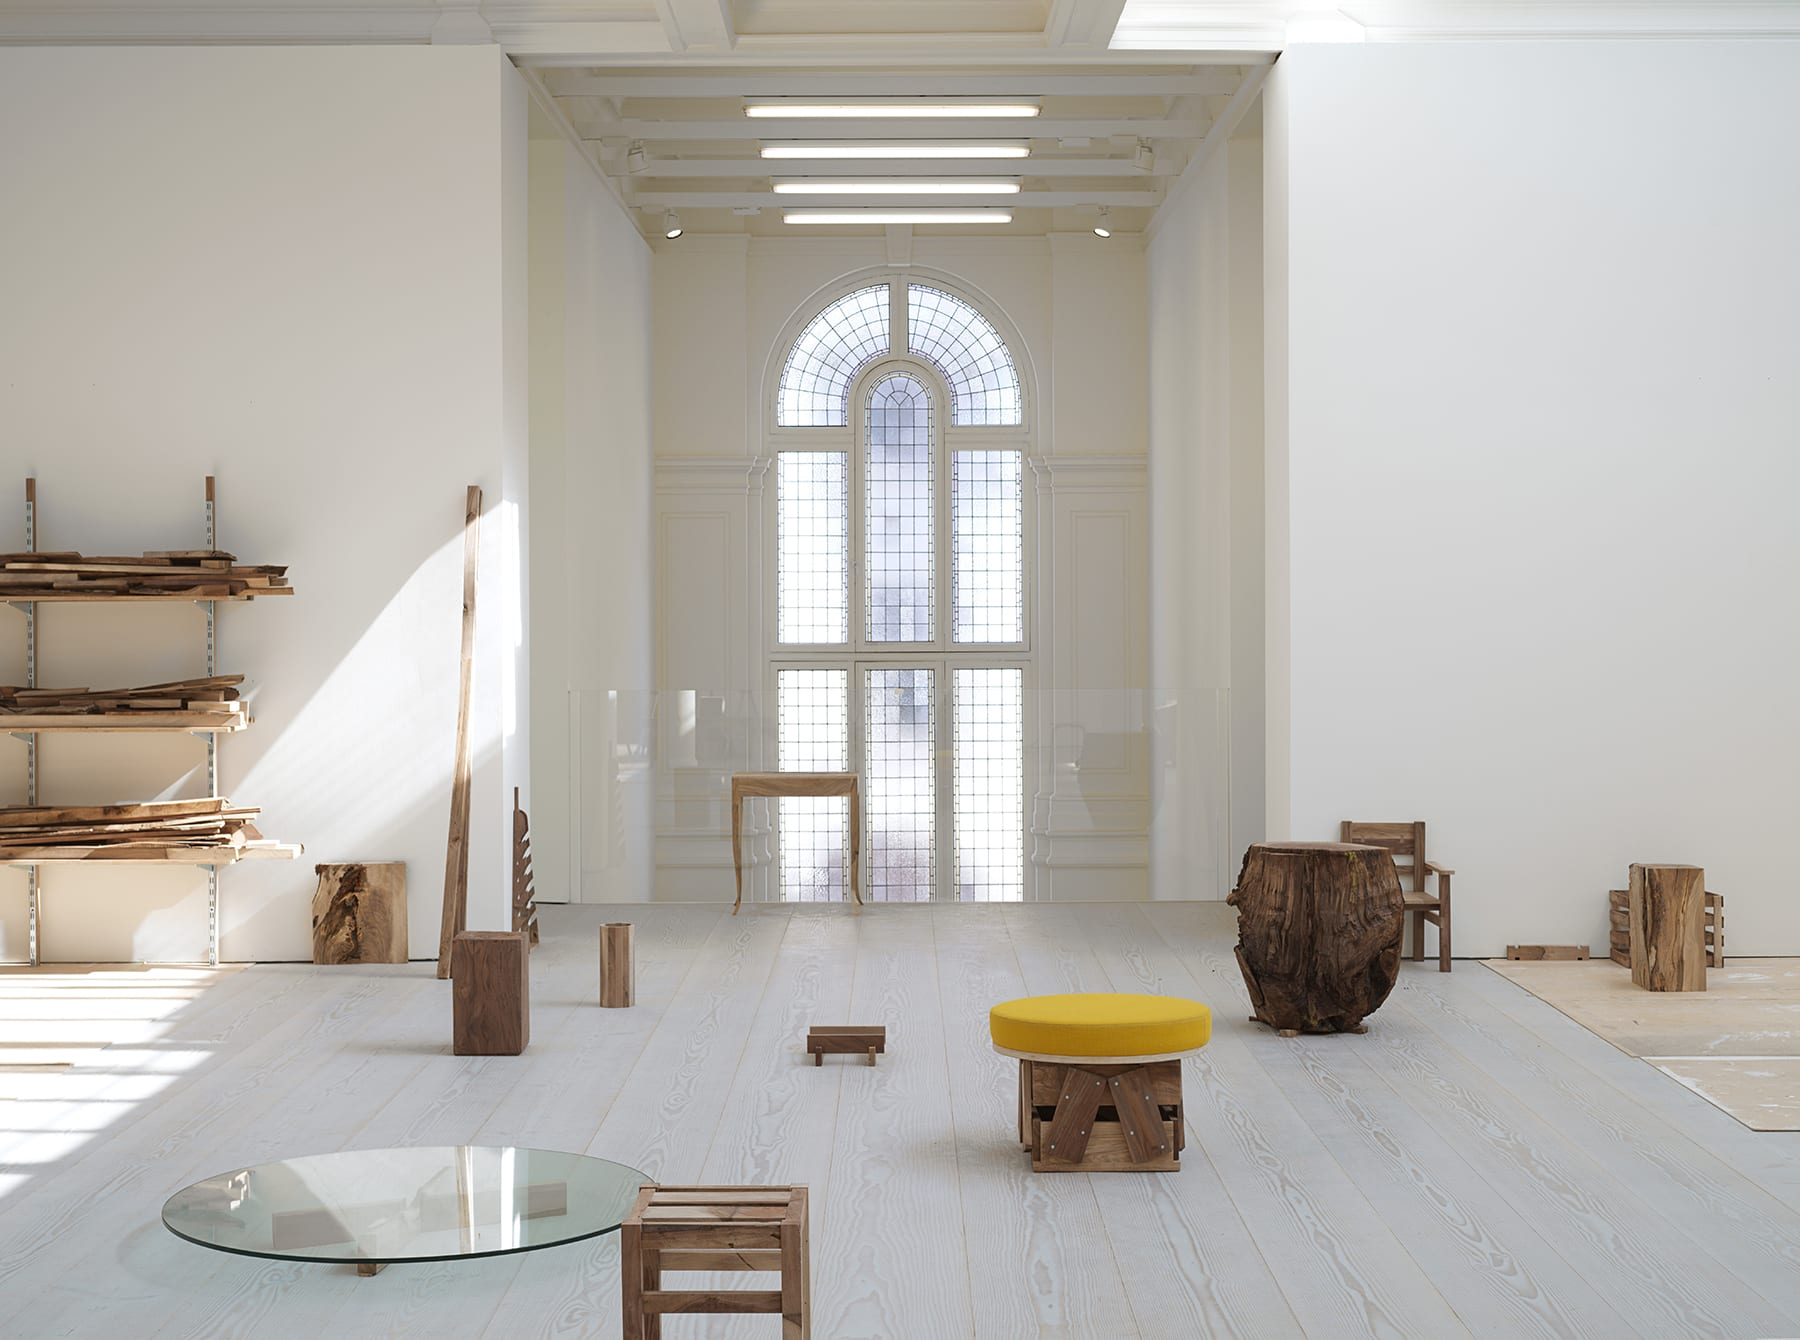 A gallery room with a floor-to-ceiling glass window that faces several wooden coffee tables and a flat, round glass circular structure on the ground.